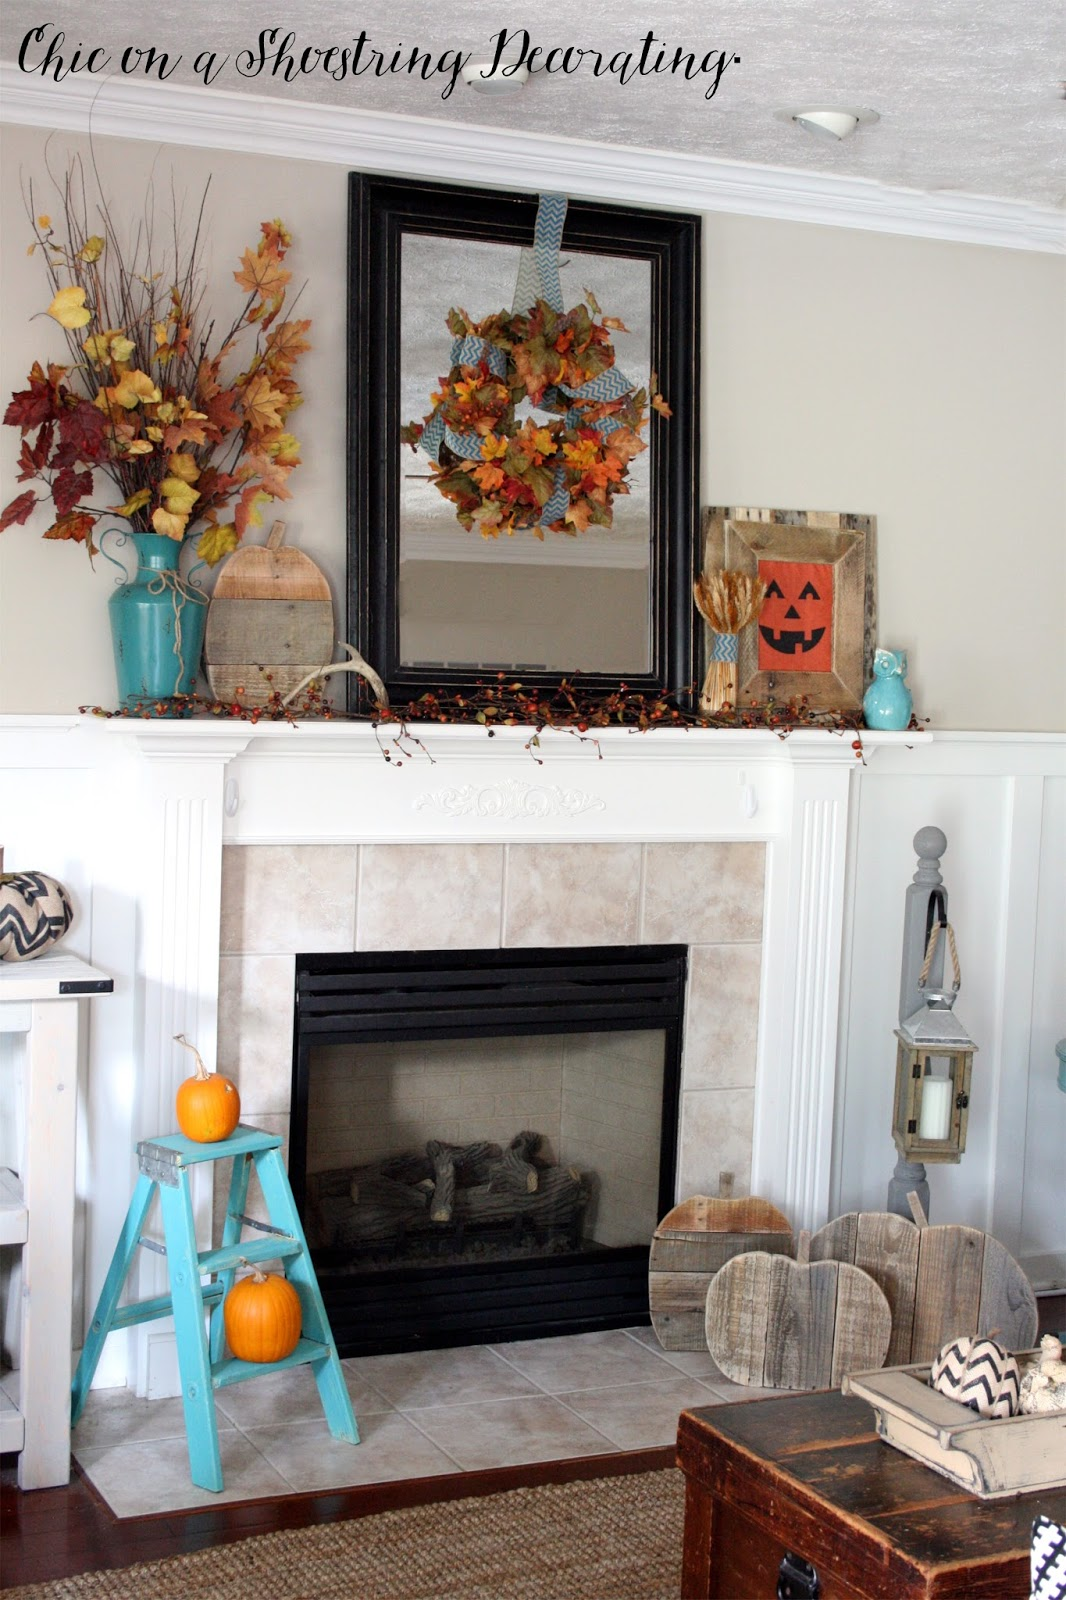 Chic on a Shoestring Decorating: Fall Farmhouse Decor to ...